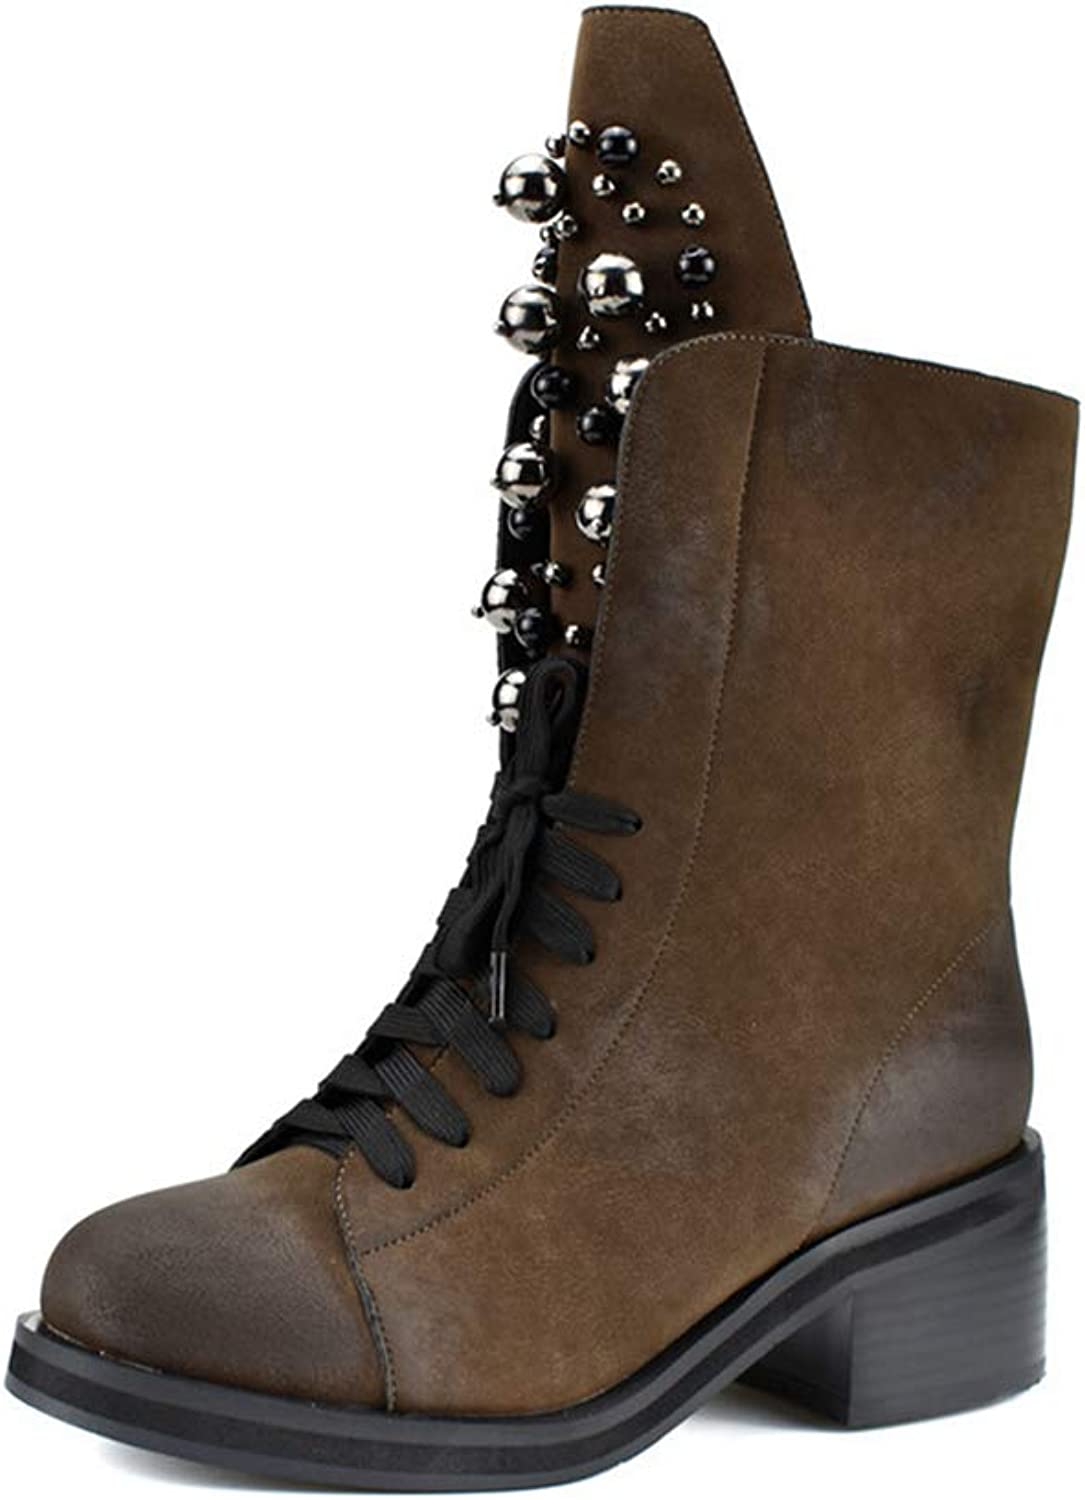 Womens Square High Heel Calf Boots Round Toe Rubber Sole Lace Up Short Plush String Bead Warm shoes